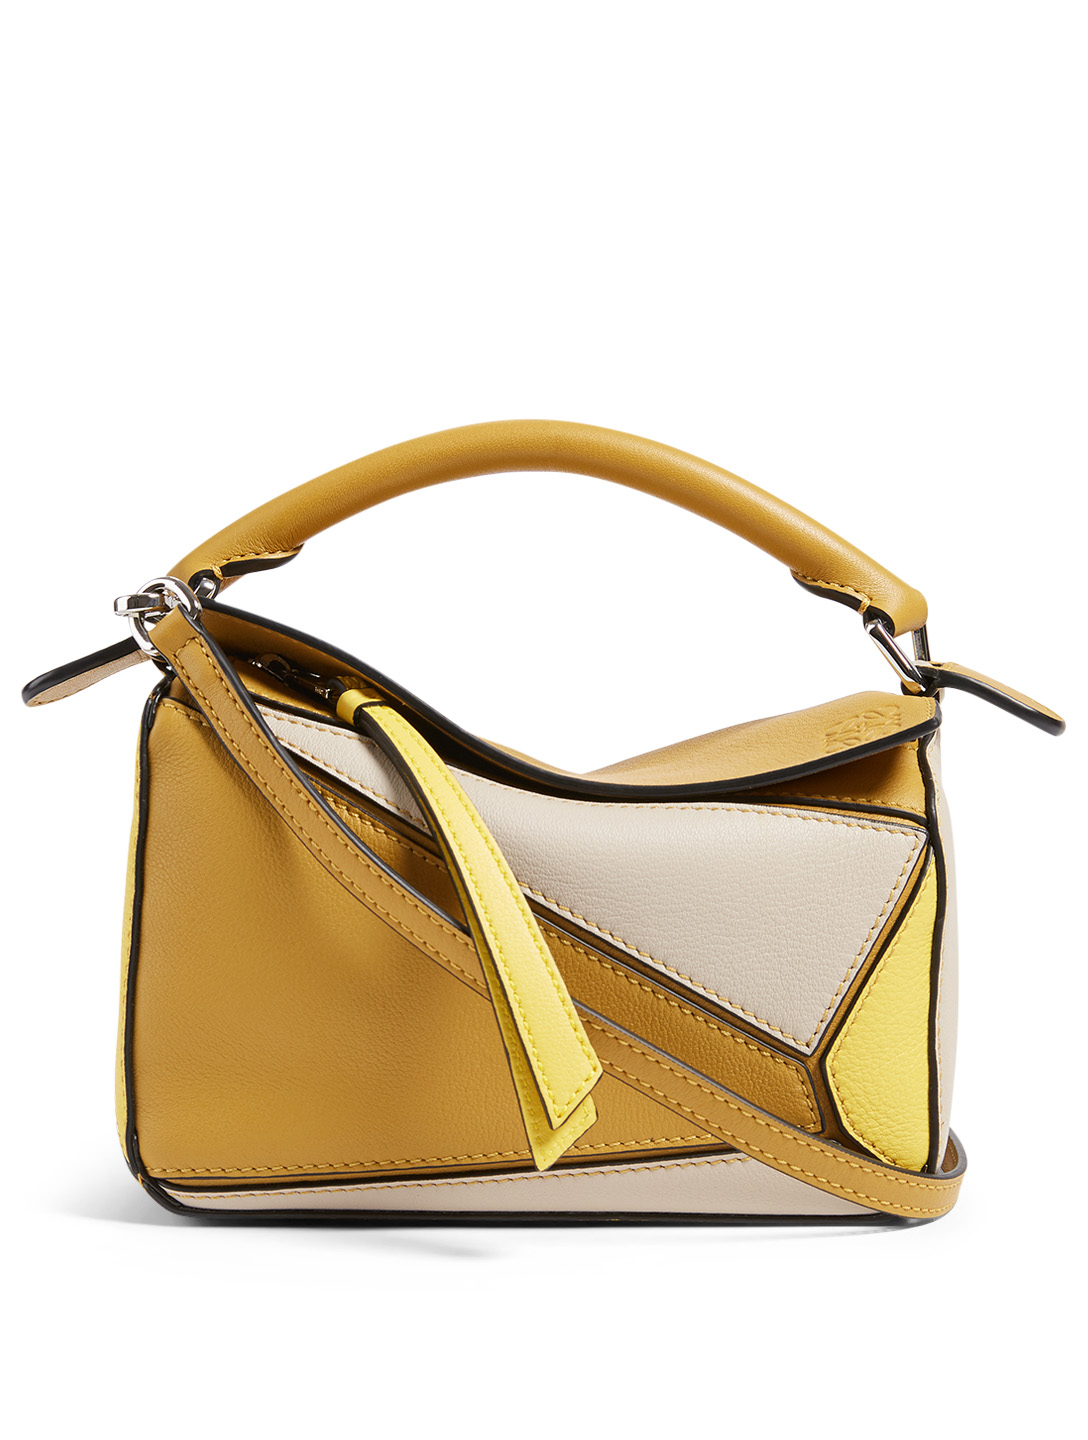 LOEWE Mini Puzzle Leather Bag Women's Yellow